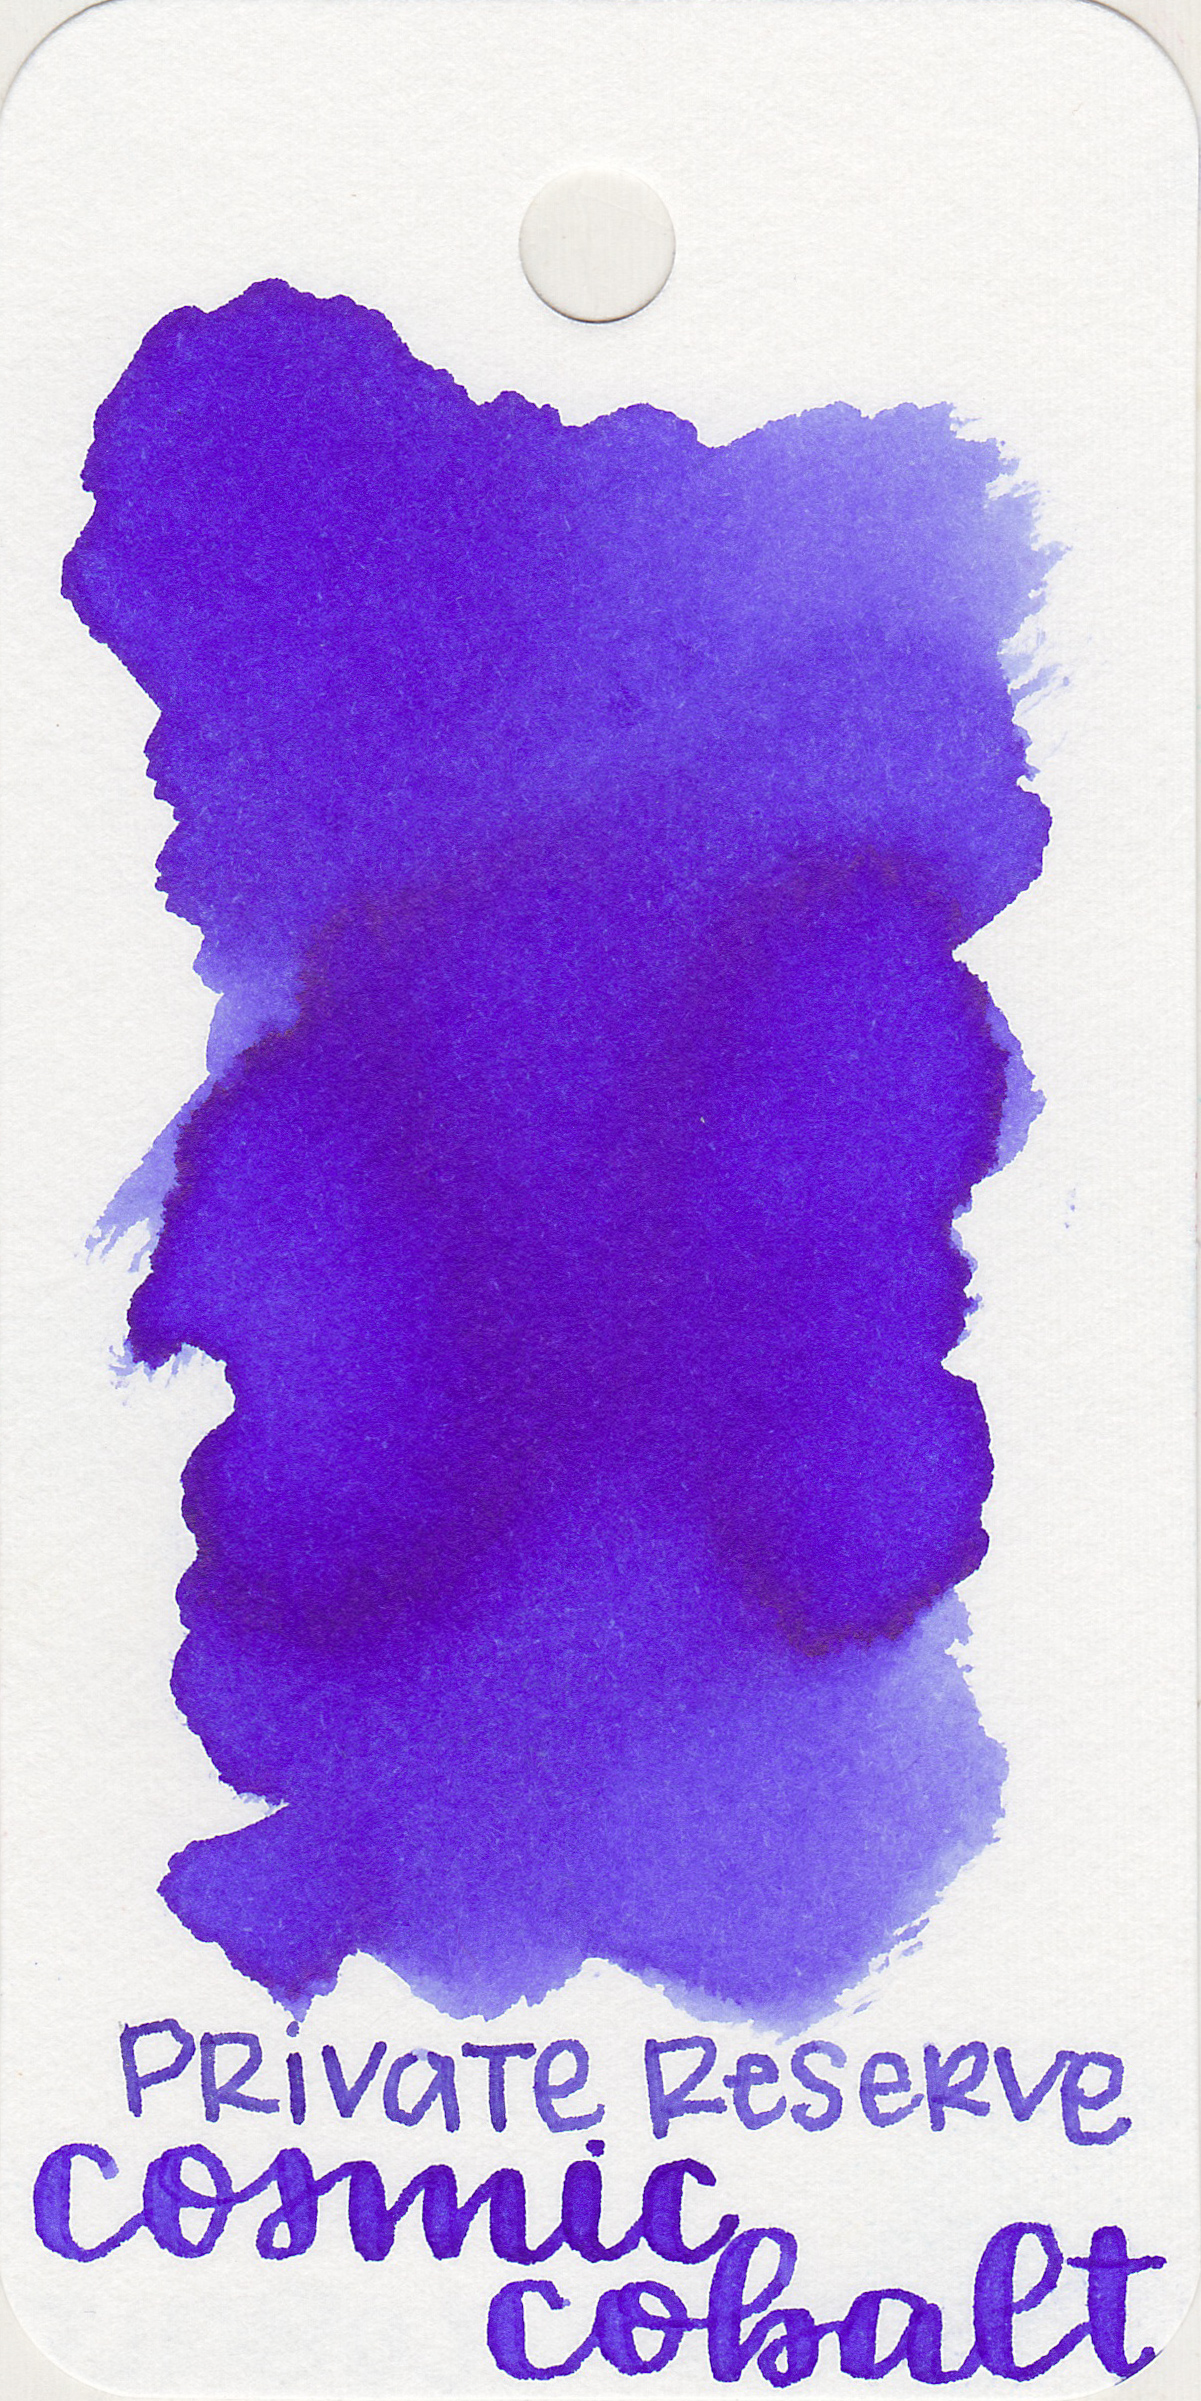 The color: - Cosmic Cobalt is a blue that is almost purple. It's in that blue-violet area in-between the two colors.